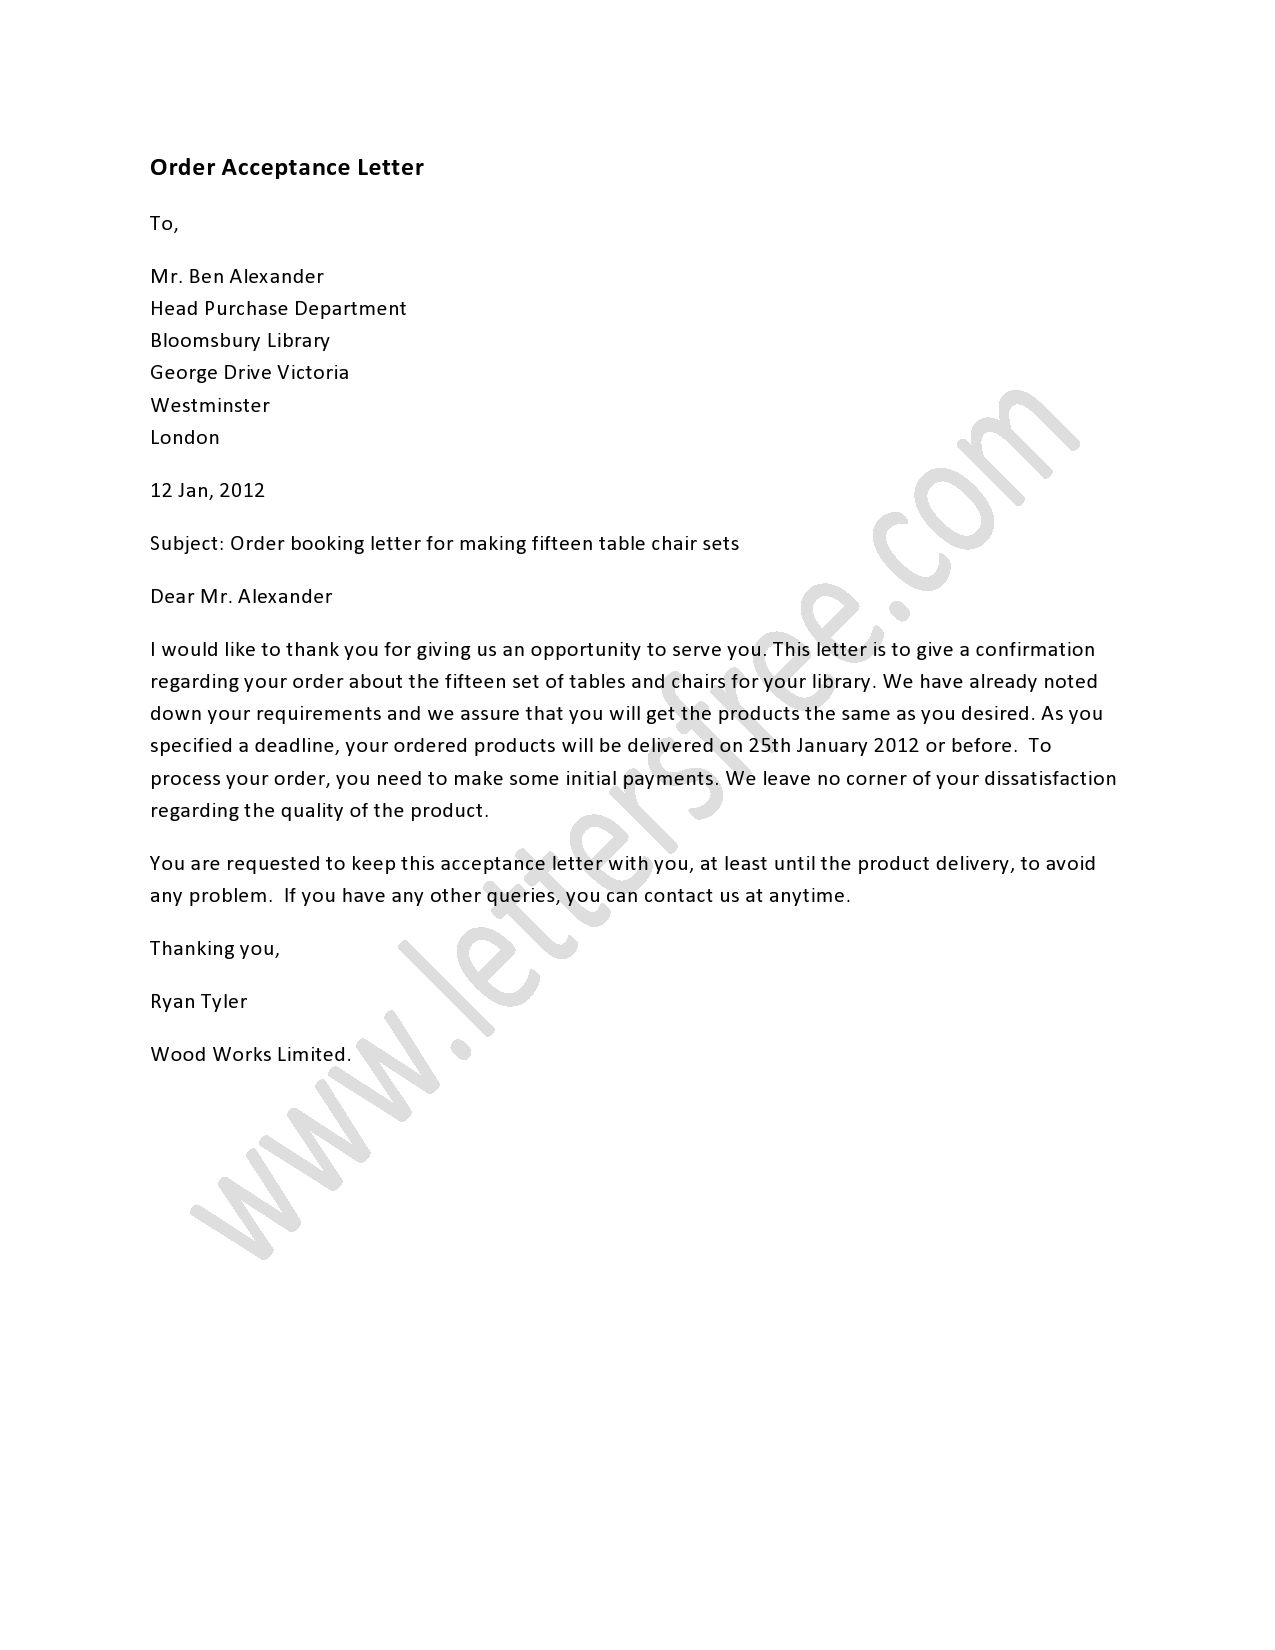 an order acceptance letter is written to inform a company about accepting their order for a certain product or service